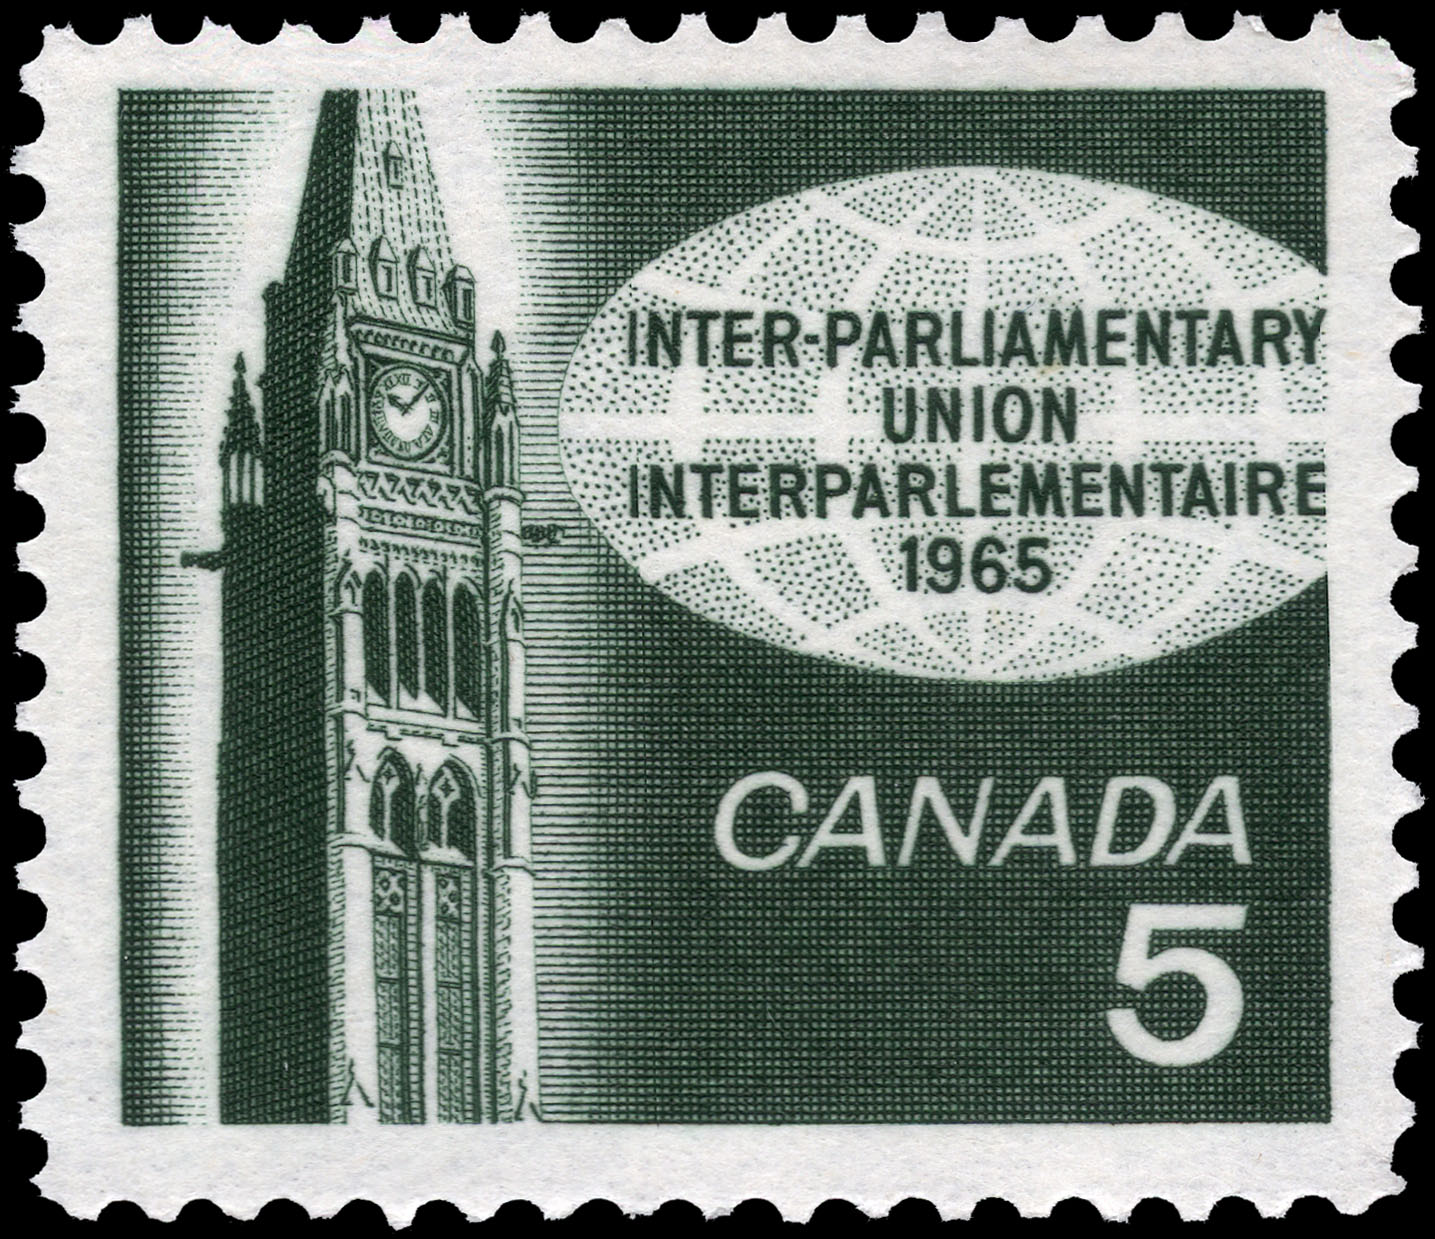 Inter-Parliamentary Union, 1965 Canada Postage Stamp